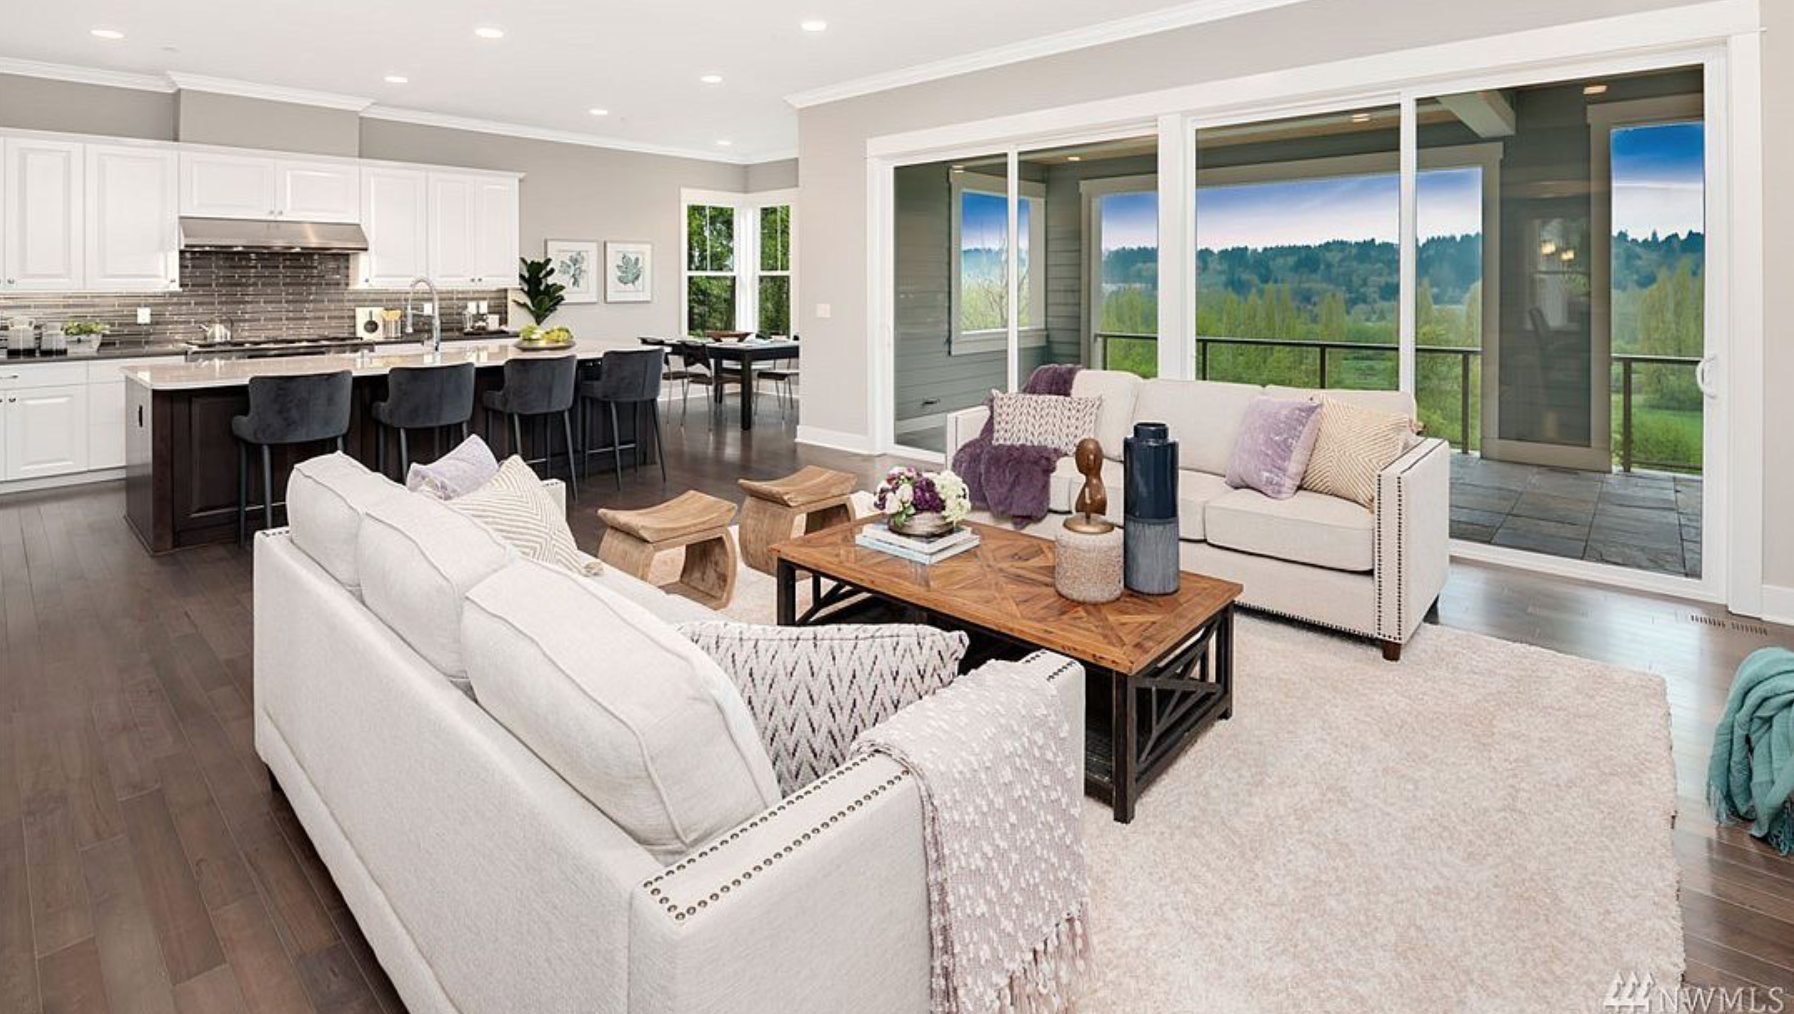 Featured here in one of the living rooms is one of three private terraces.